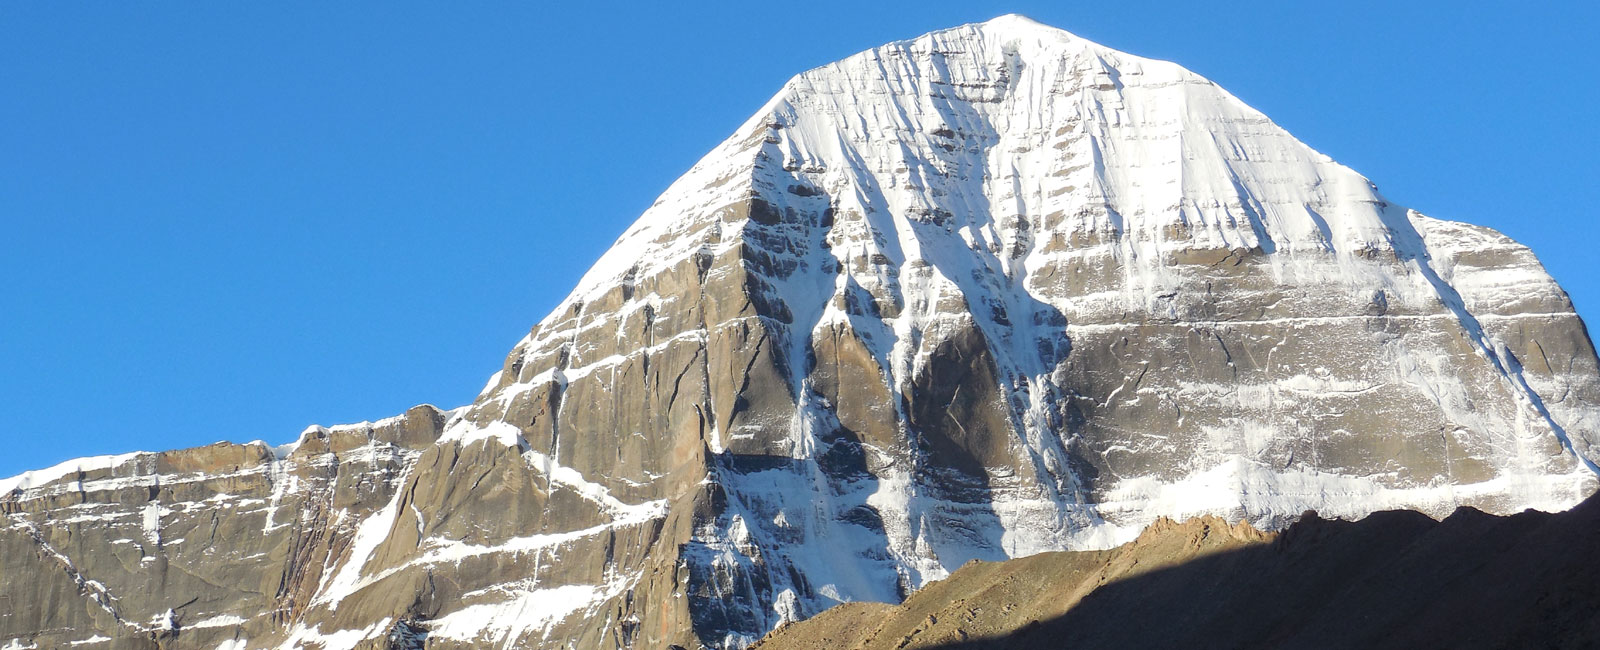 holy city helicopter tours with Kailash Mansarovar Yatra on Jerry Hall Confesses Hasnt Met 6320277 furthermore Trekking in terskey ala Too range as well Grand Canyon National Park United States additionally Best Helicopter Tours Charleston Sc in addition Holycityhelicopters.